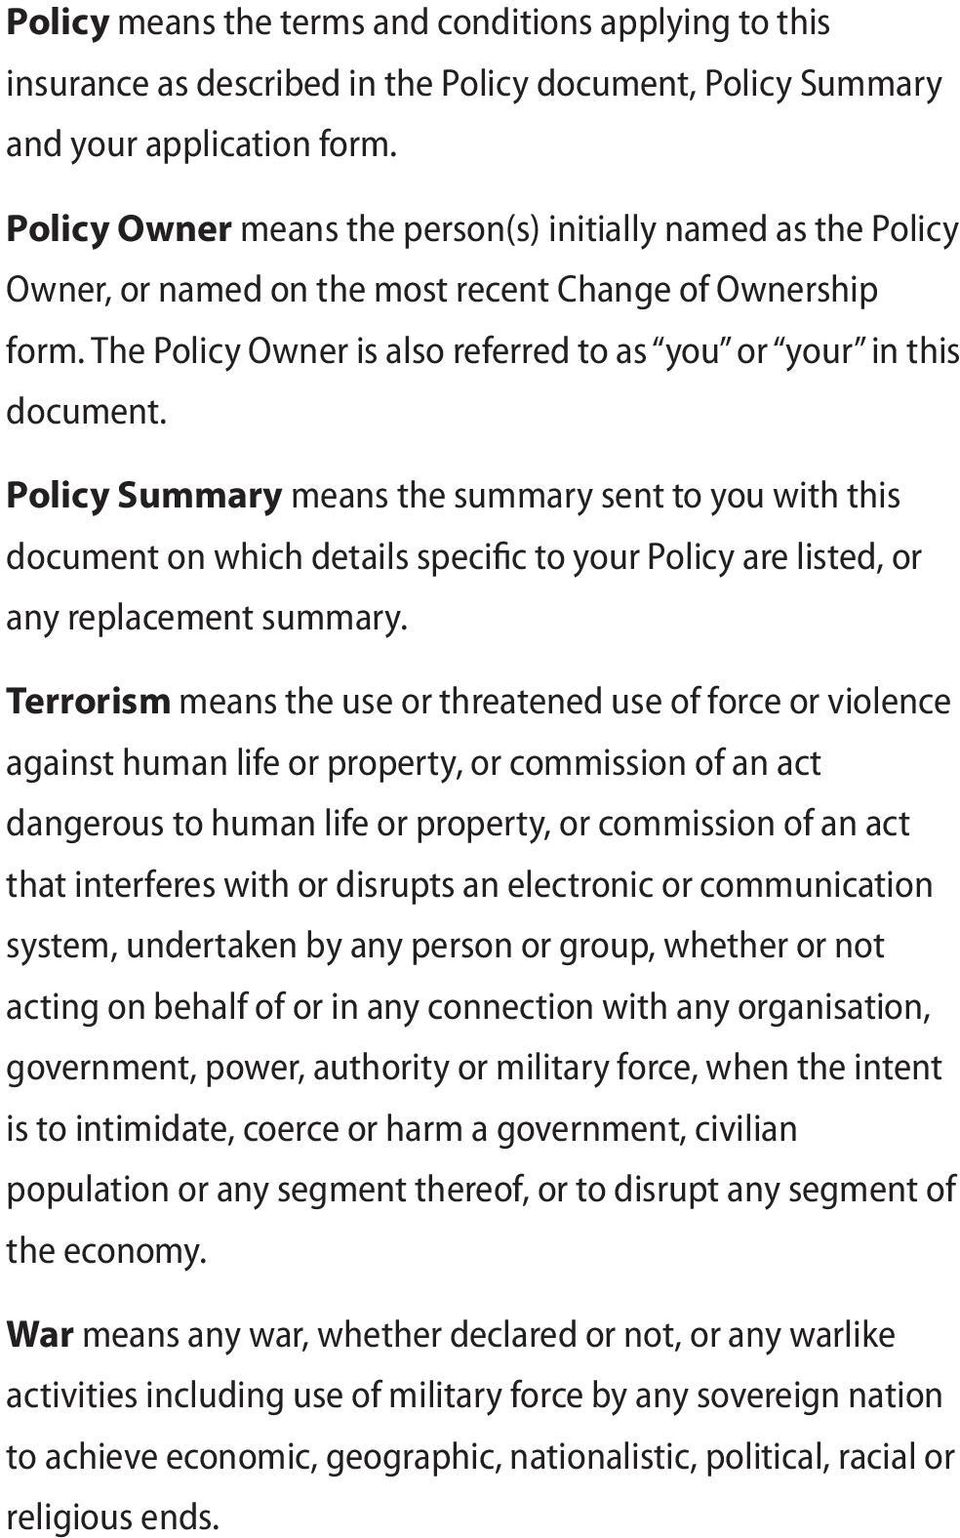 Policy Summary means the summary sent to you with this document on which details specific to your Policy are listed, or any replacement summary.